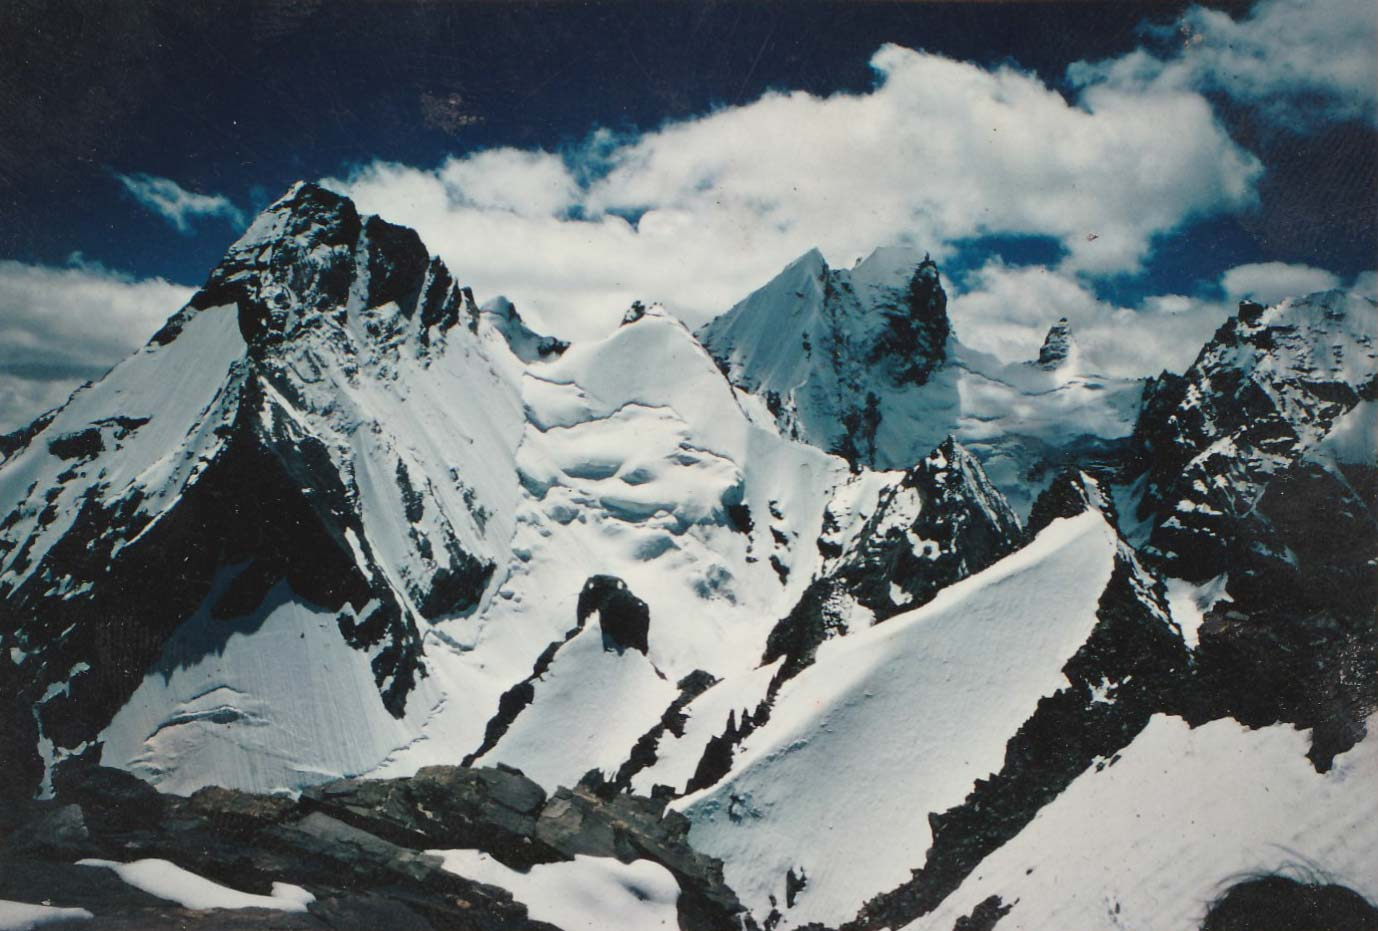 Himalayan Mountain scene - The Frozen River by James Crowden